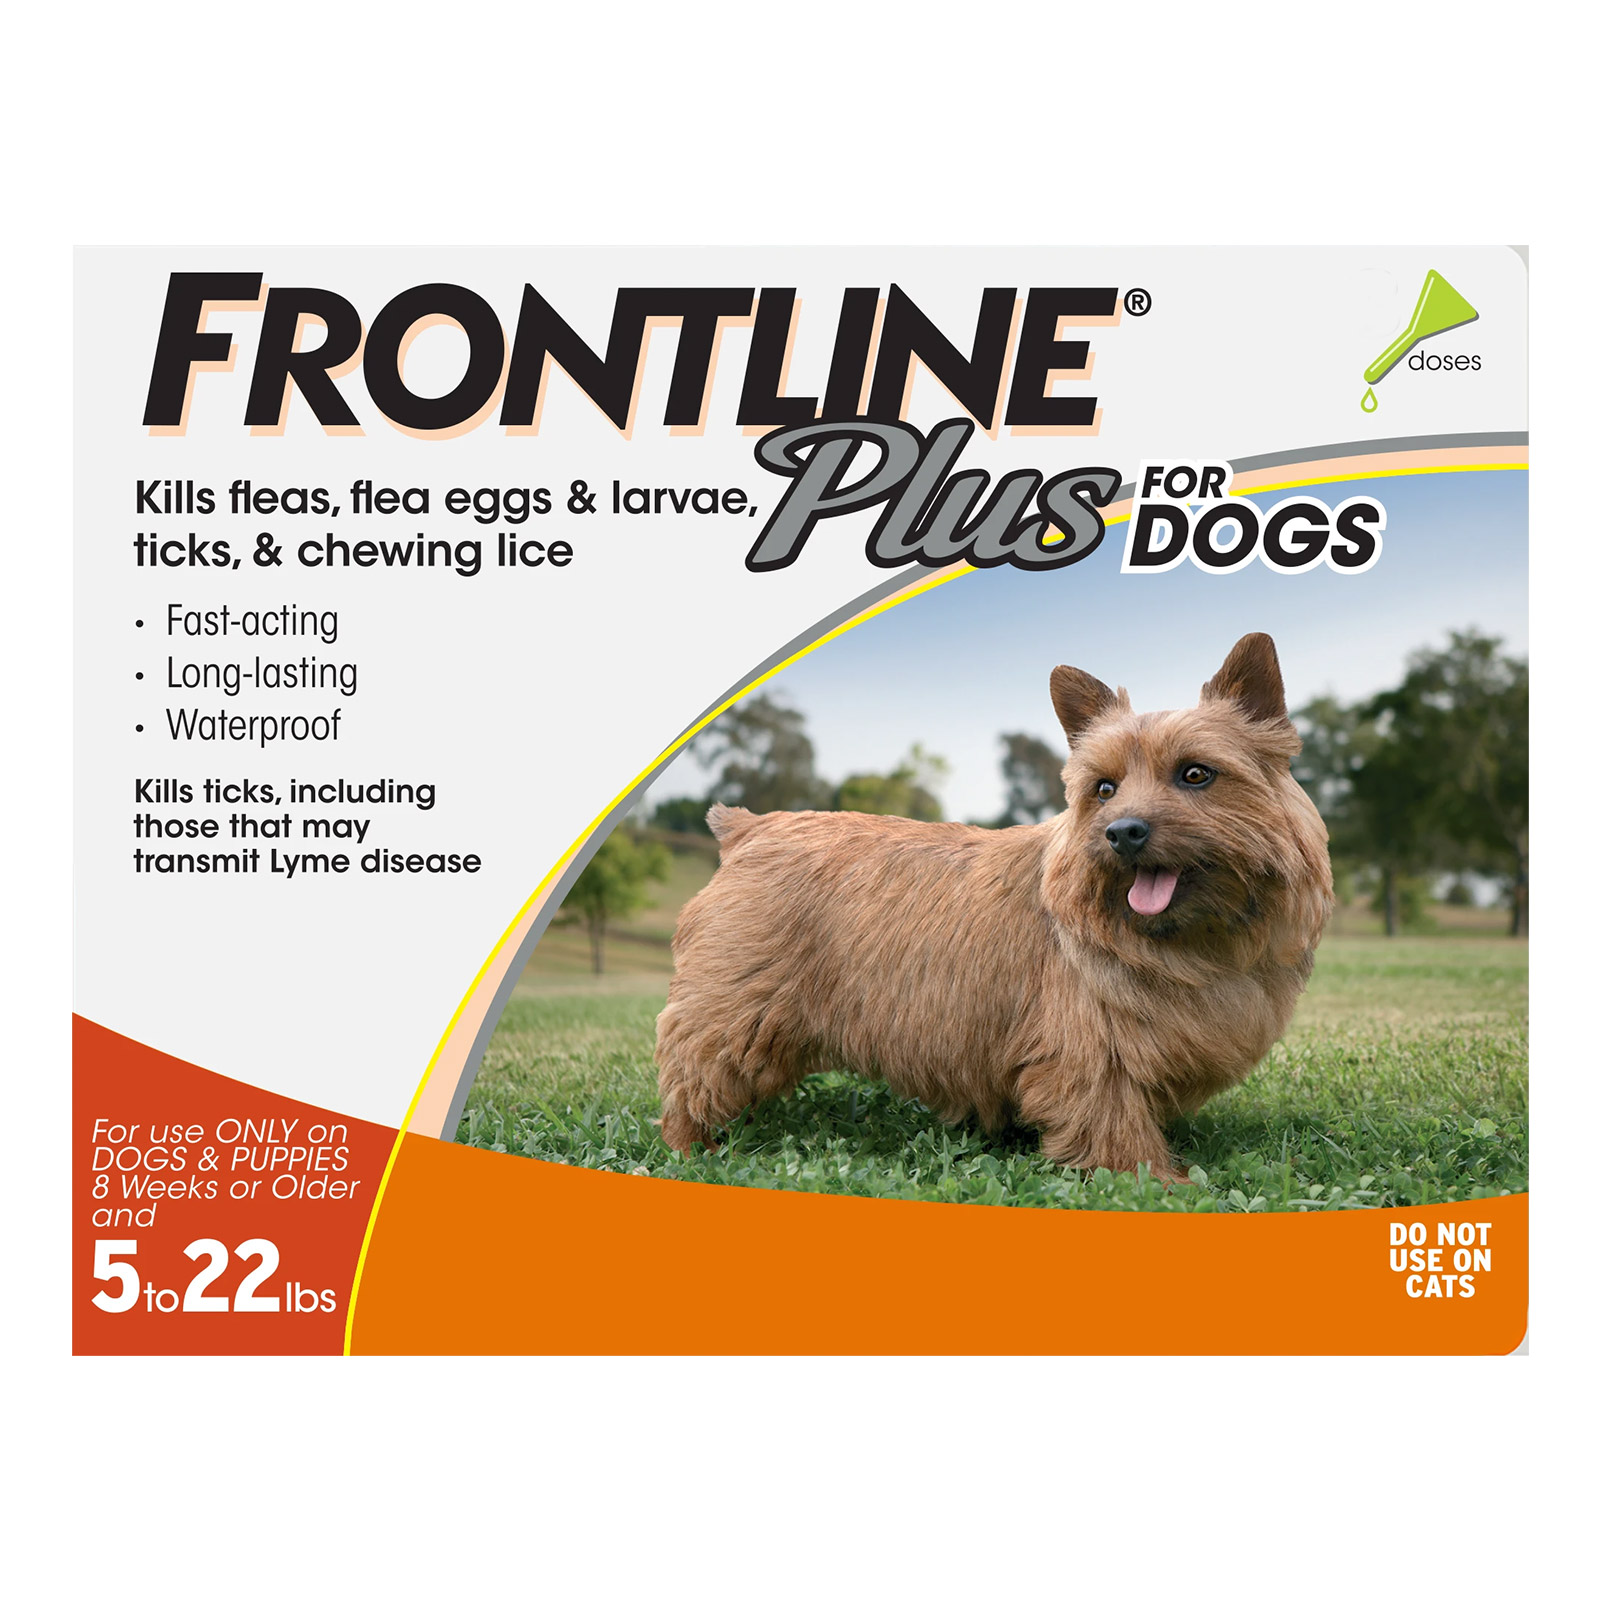 frontline plus for small dogs up to 22lbs (orange)  3 months on lovemypets.com